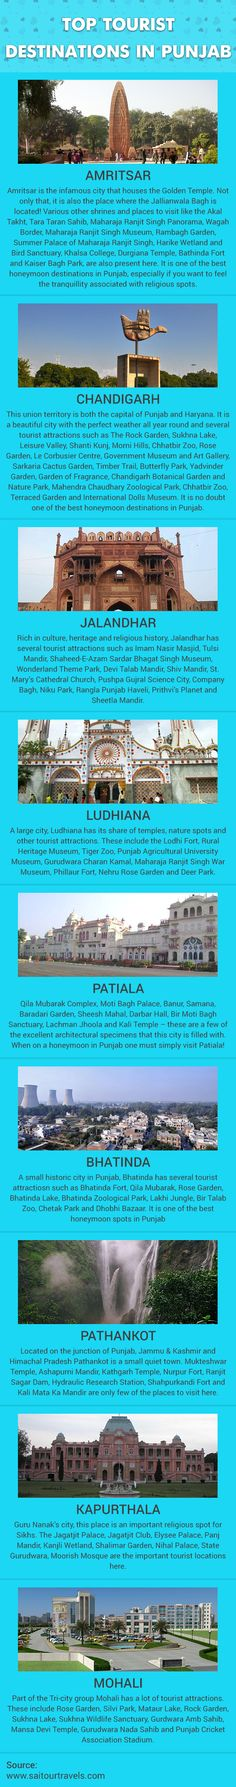 Do you know the top #tourist destination in #Punjab? Have a look: http://visual.ly/top-tourist-destinations-punjab